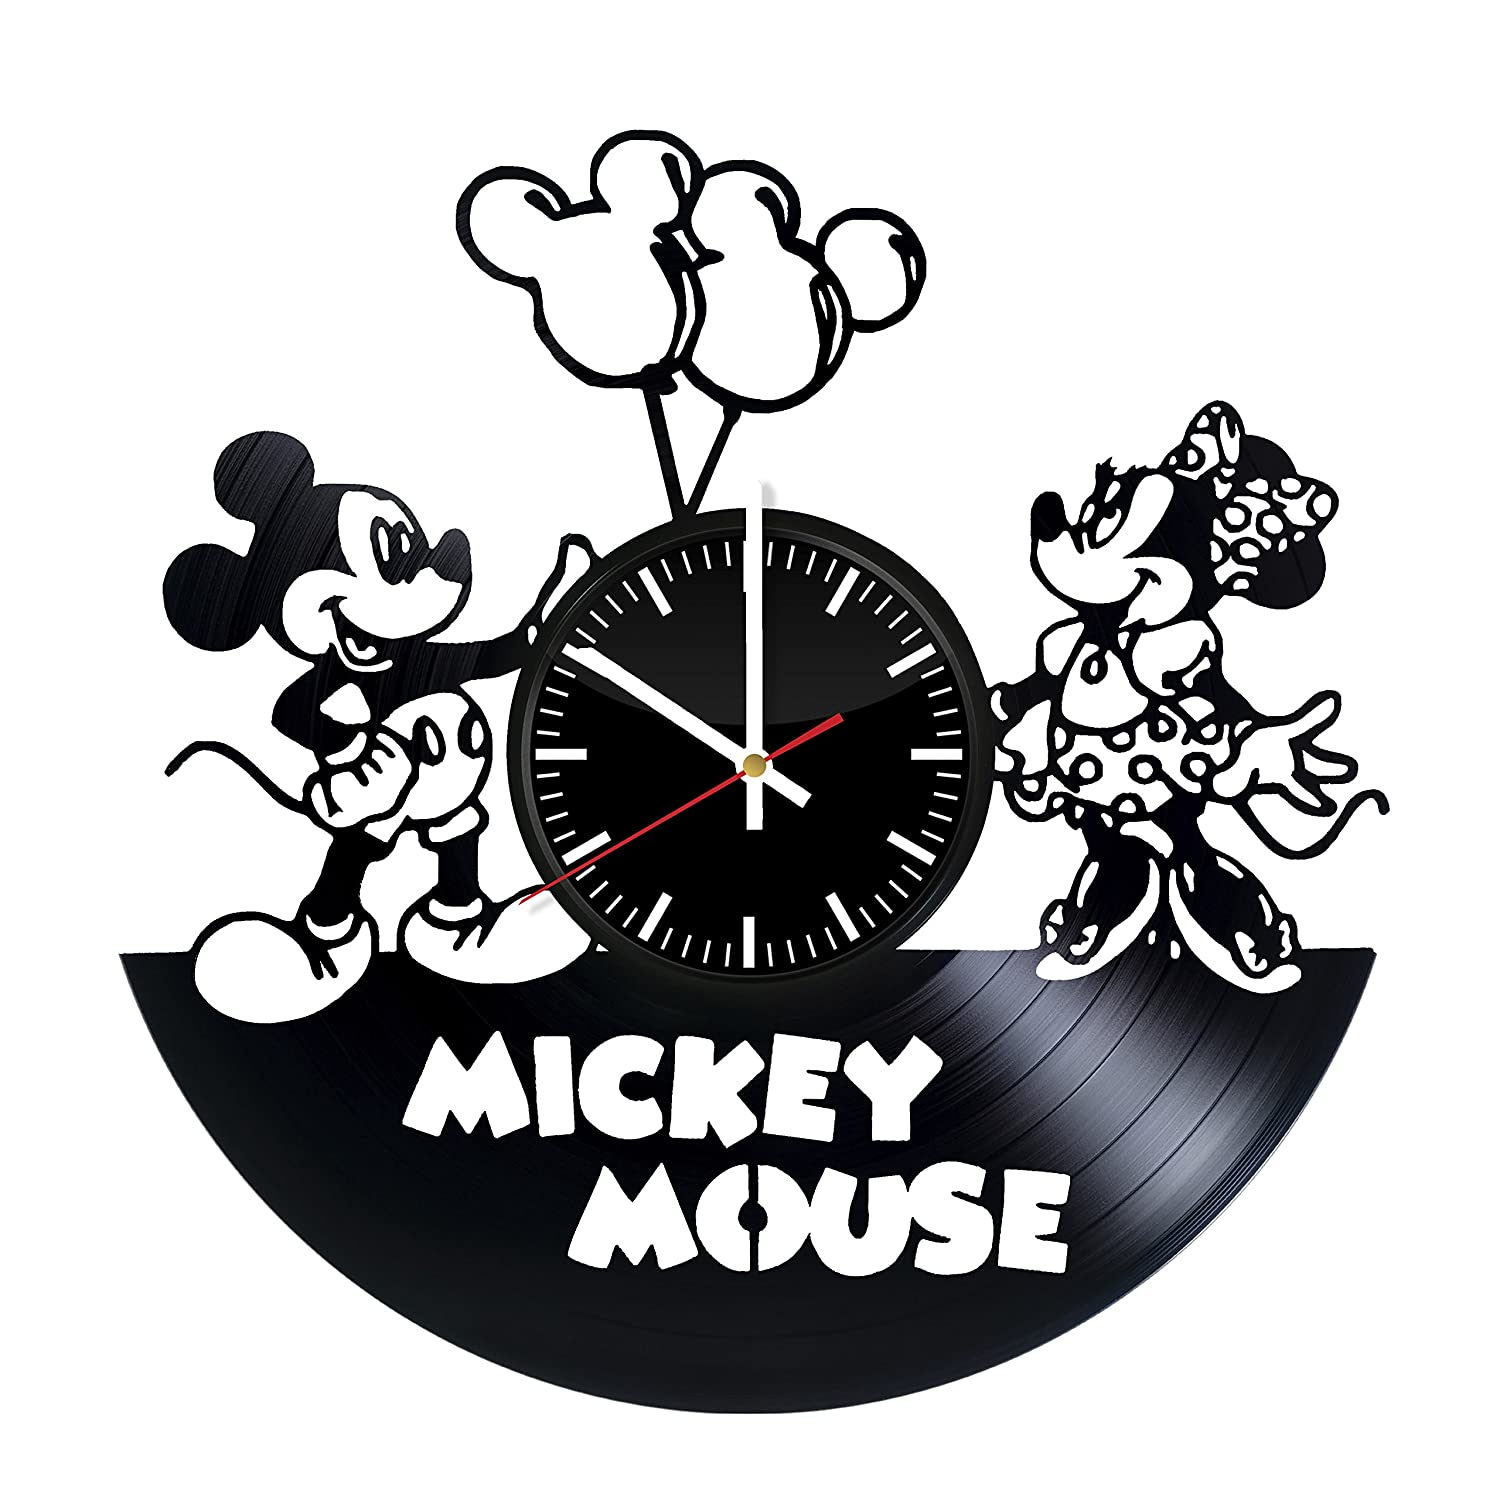 Amazon.com: Mickey Mouse Vinyl Record Wall Clock . Get unique home room wall art decor. Cool gift ideas for boys, girls, kids, teens, men and women.